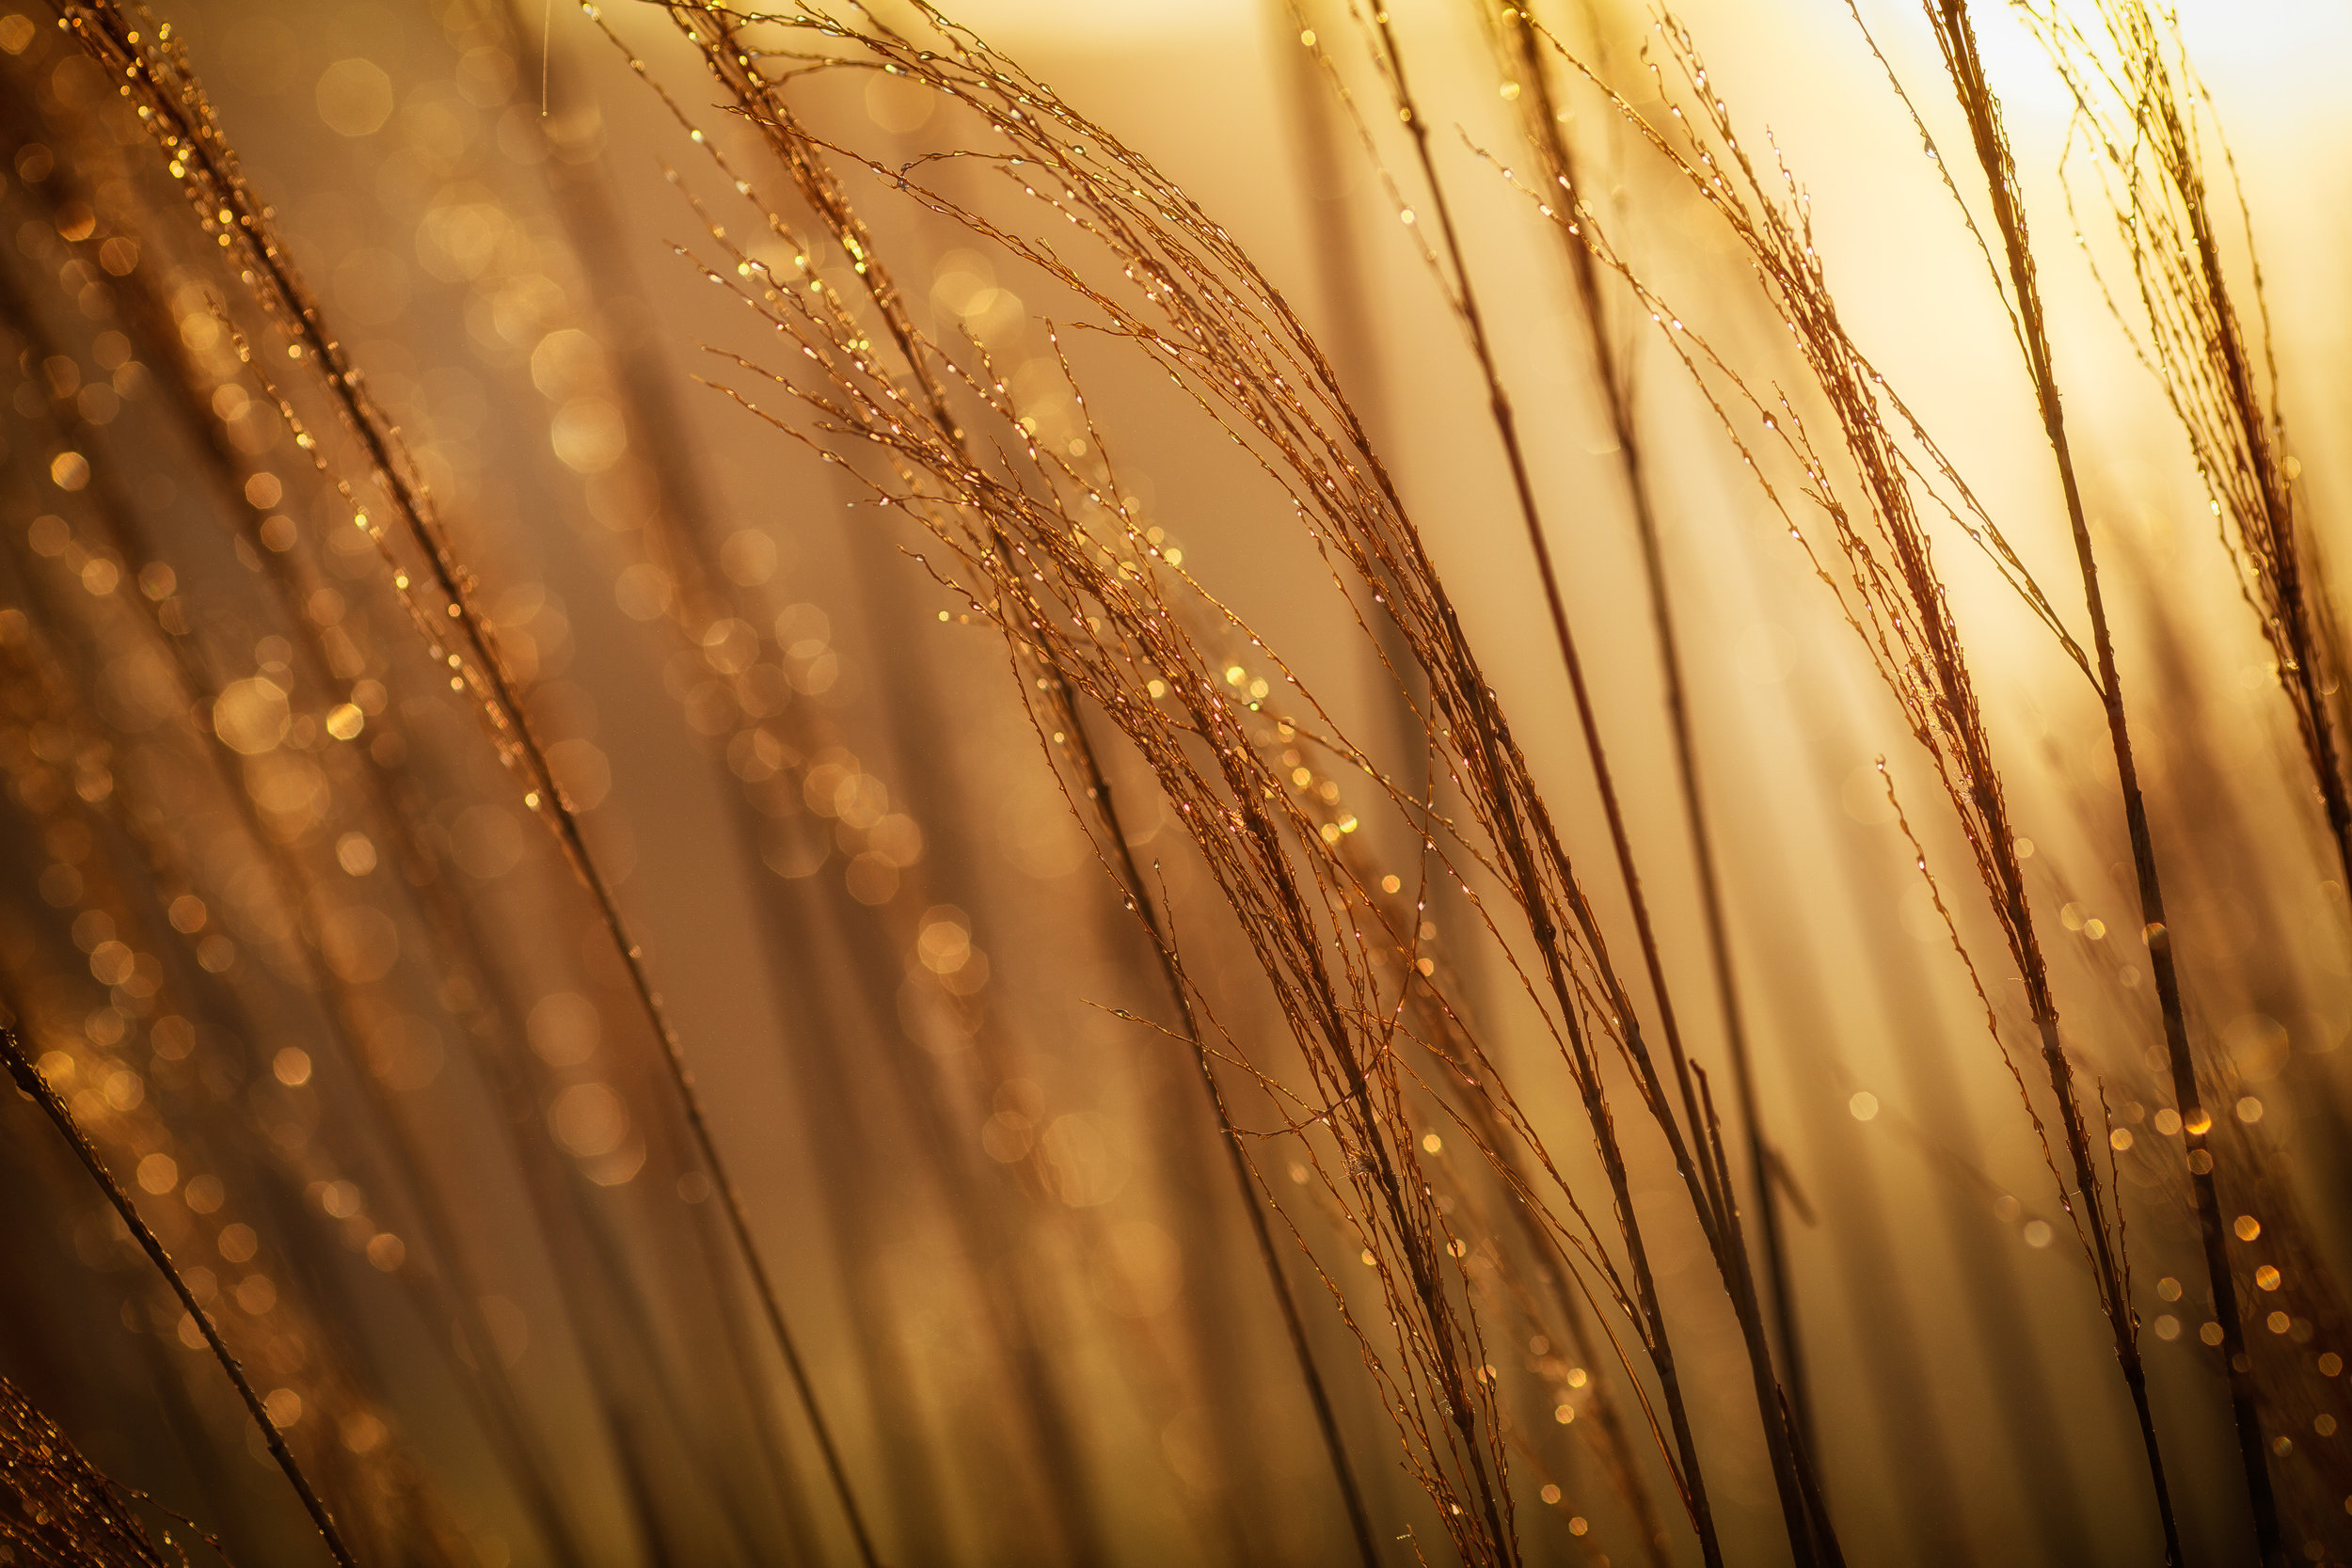 Low-gluten wheat engineered using CRISPR could preserve the taste and texture of wheat products while making them available to gluten-sensitive people. Photo credit: Johnny McClung